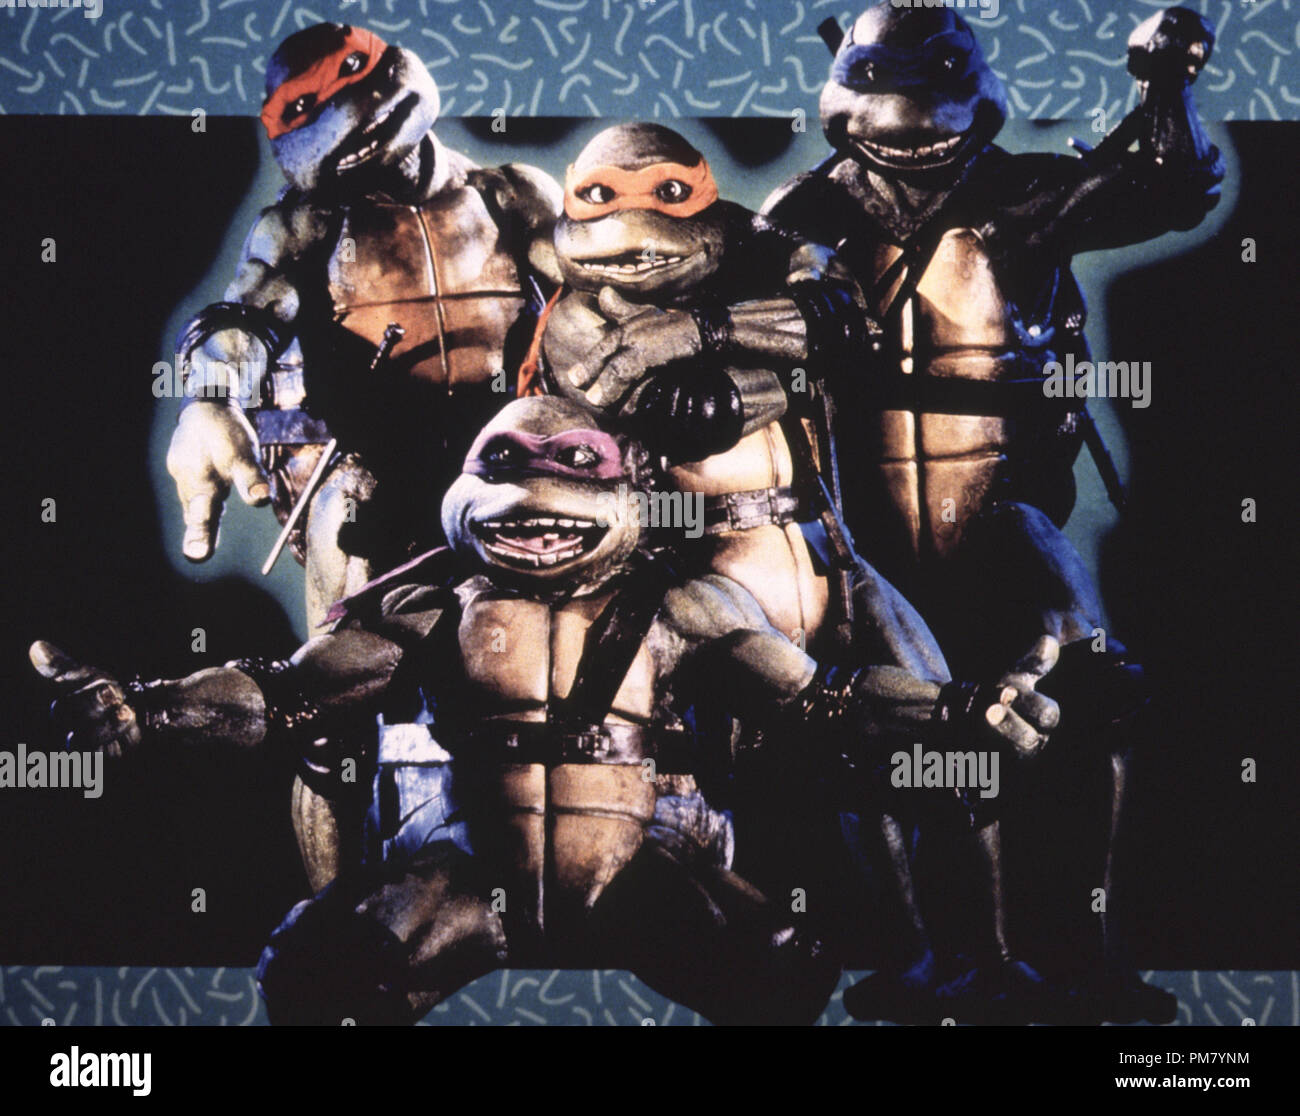 Film still or Publicity still from 'Teenage Mutant Ninja Turtles' Donatello, Michaelangelo, Raphael, Leonardo © 1990 New Line Cinema All Rights Reserved   File Reference # 31571047THA  For Editorial Use Only - Stock Image